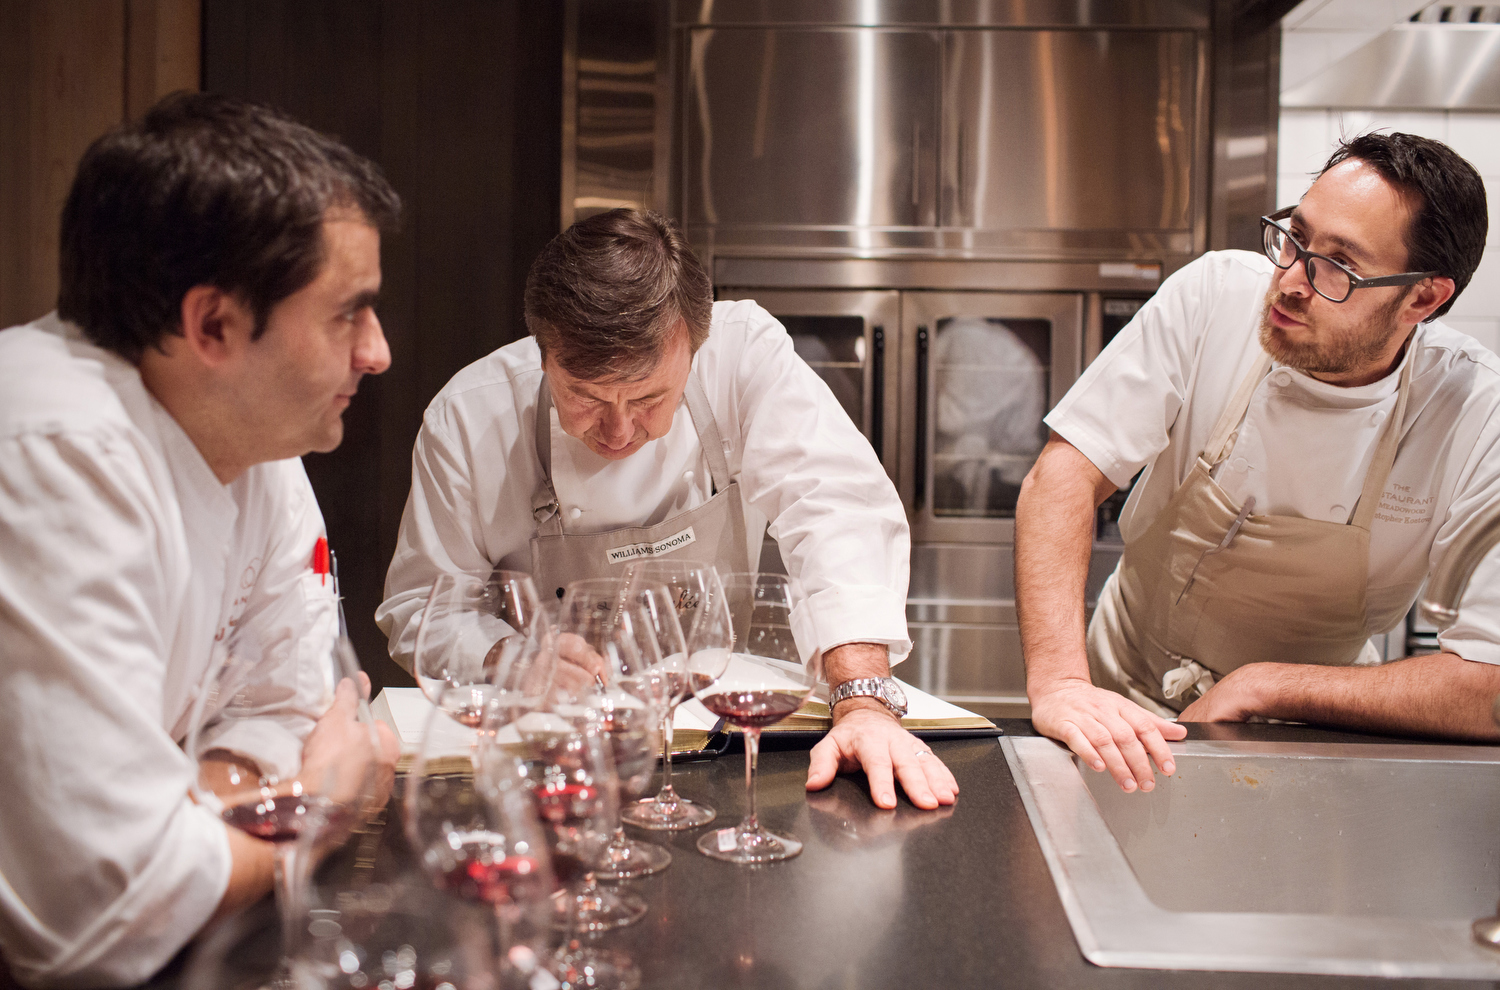 With many Michelin stars and James Beard Foundation awards between them, chefs Jean François Bruel, Daniel Boulud and Christopher Kostow, left to right.